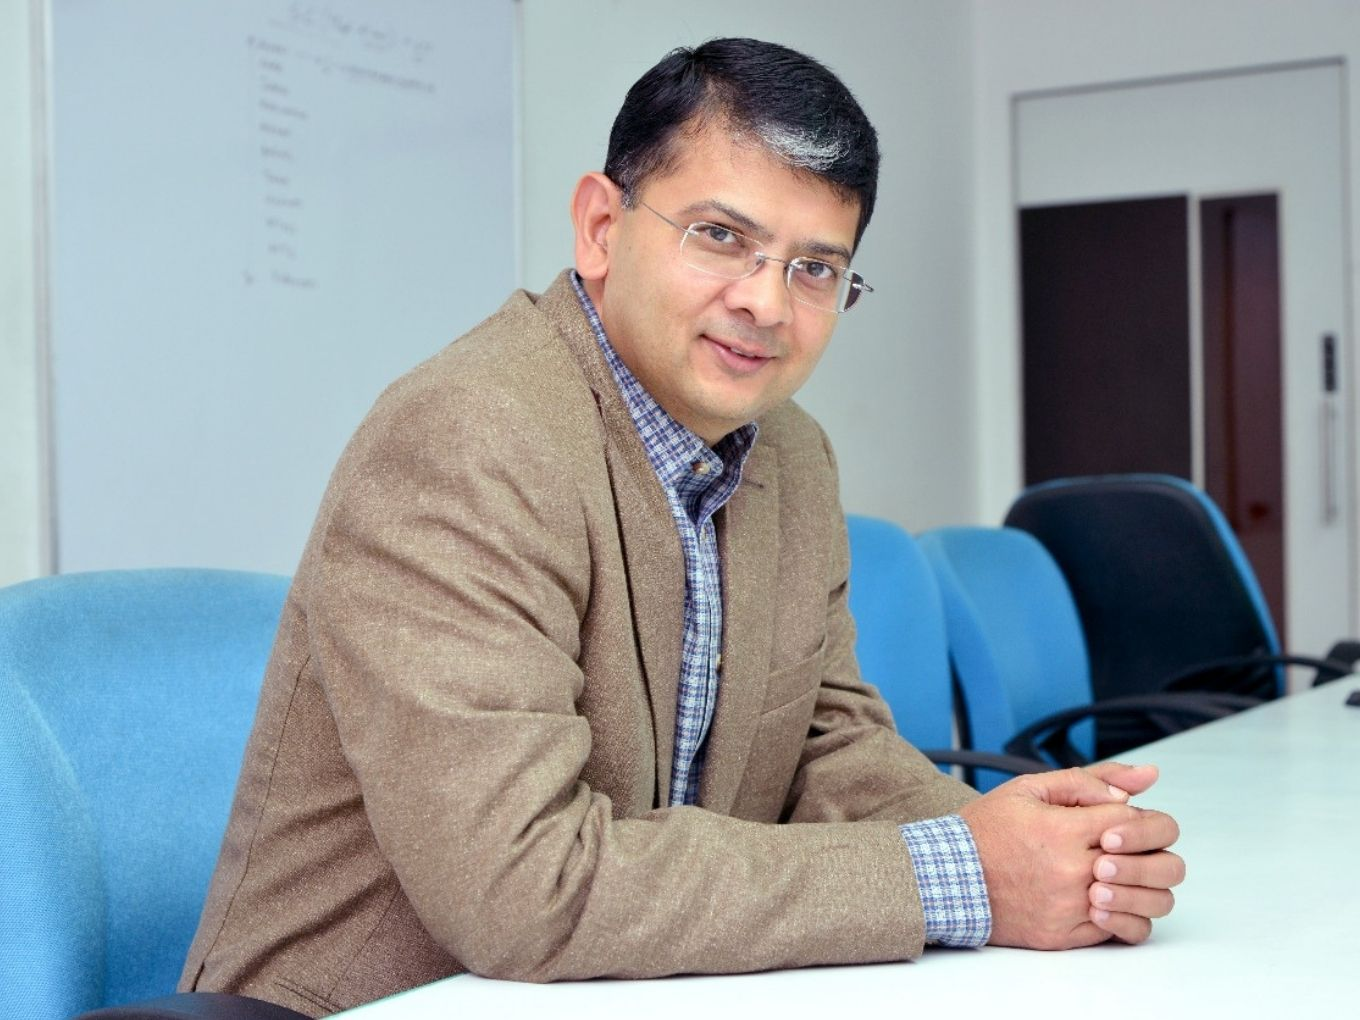 D2C Will Grow As Businesses Want To Take Charge Of Their Destinies: Gupshup's Beerud Sheth